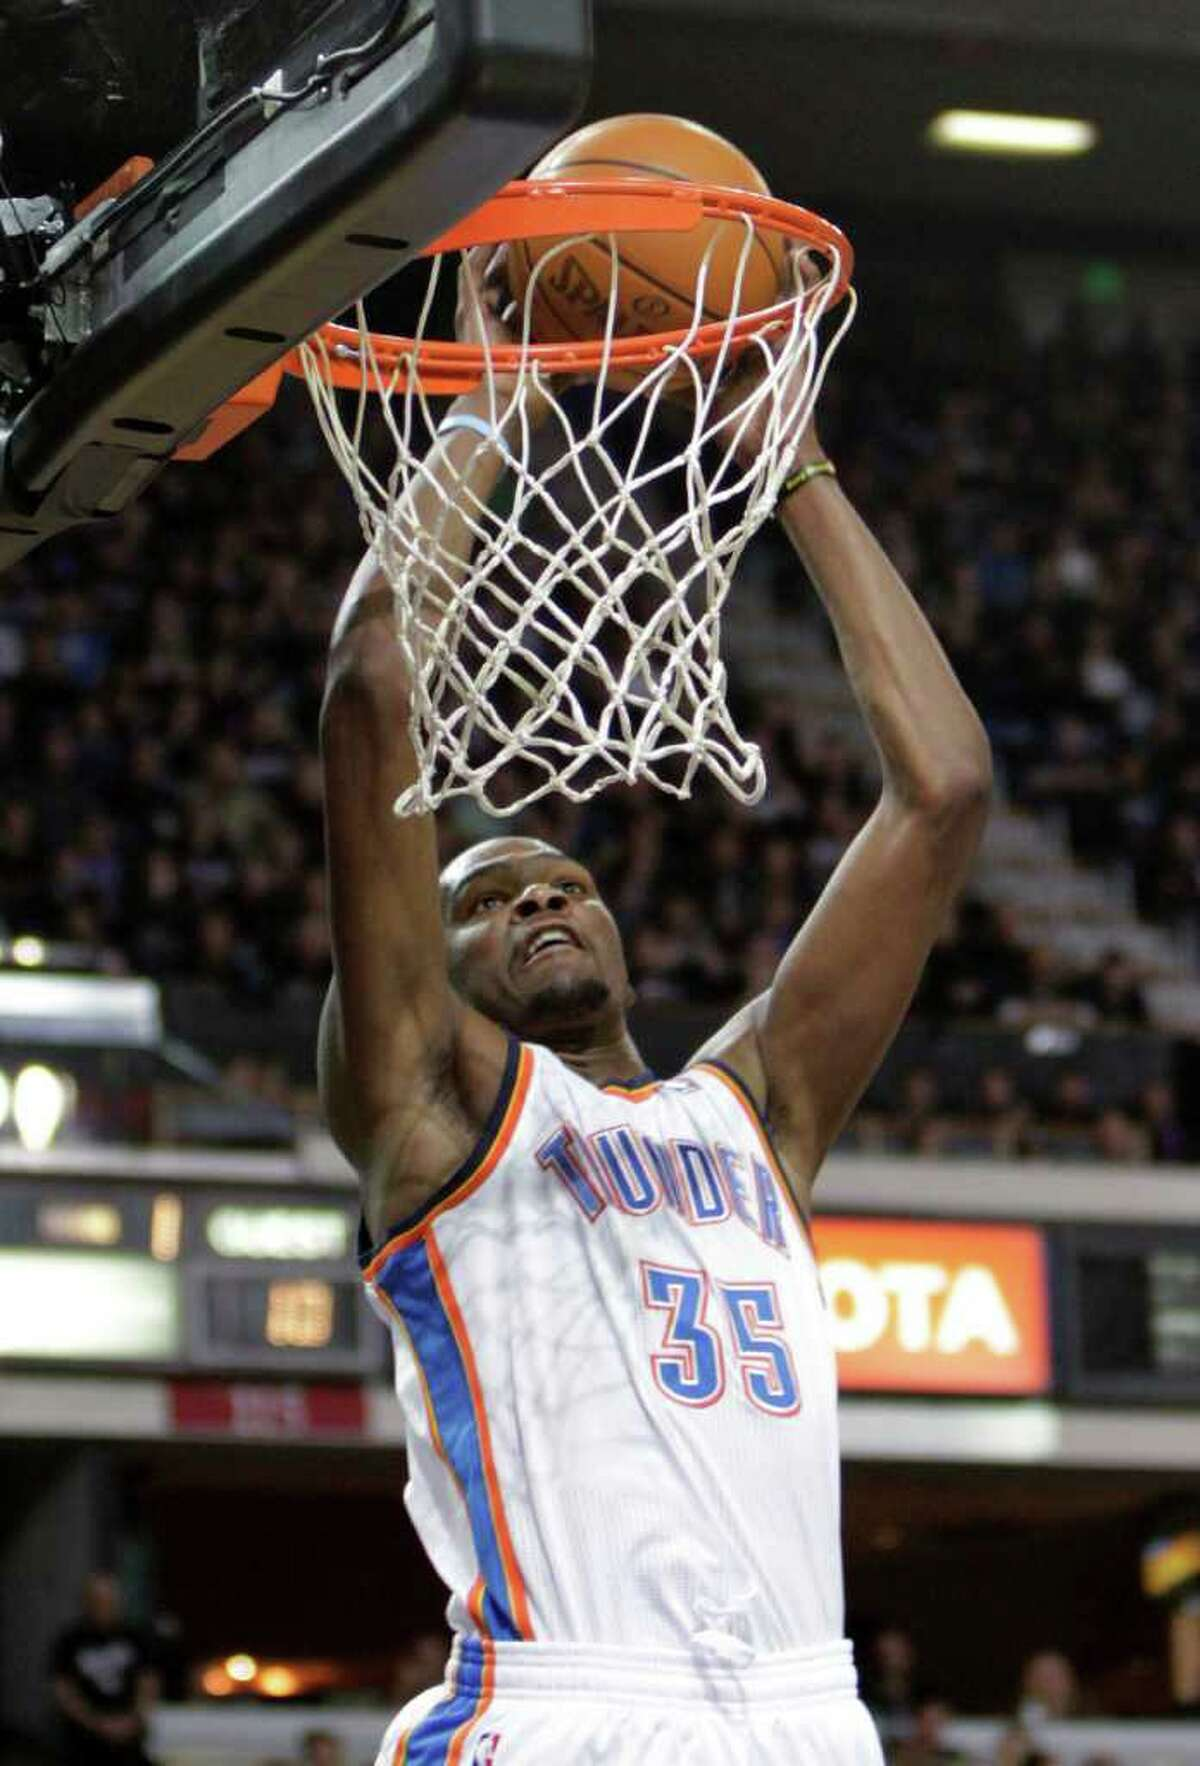 Thunder forward Kevin Durant says he's glad the All-Star Game gives him a chance to finally play alongside former Longhorn LaMarcus Aldridge.